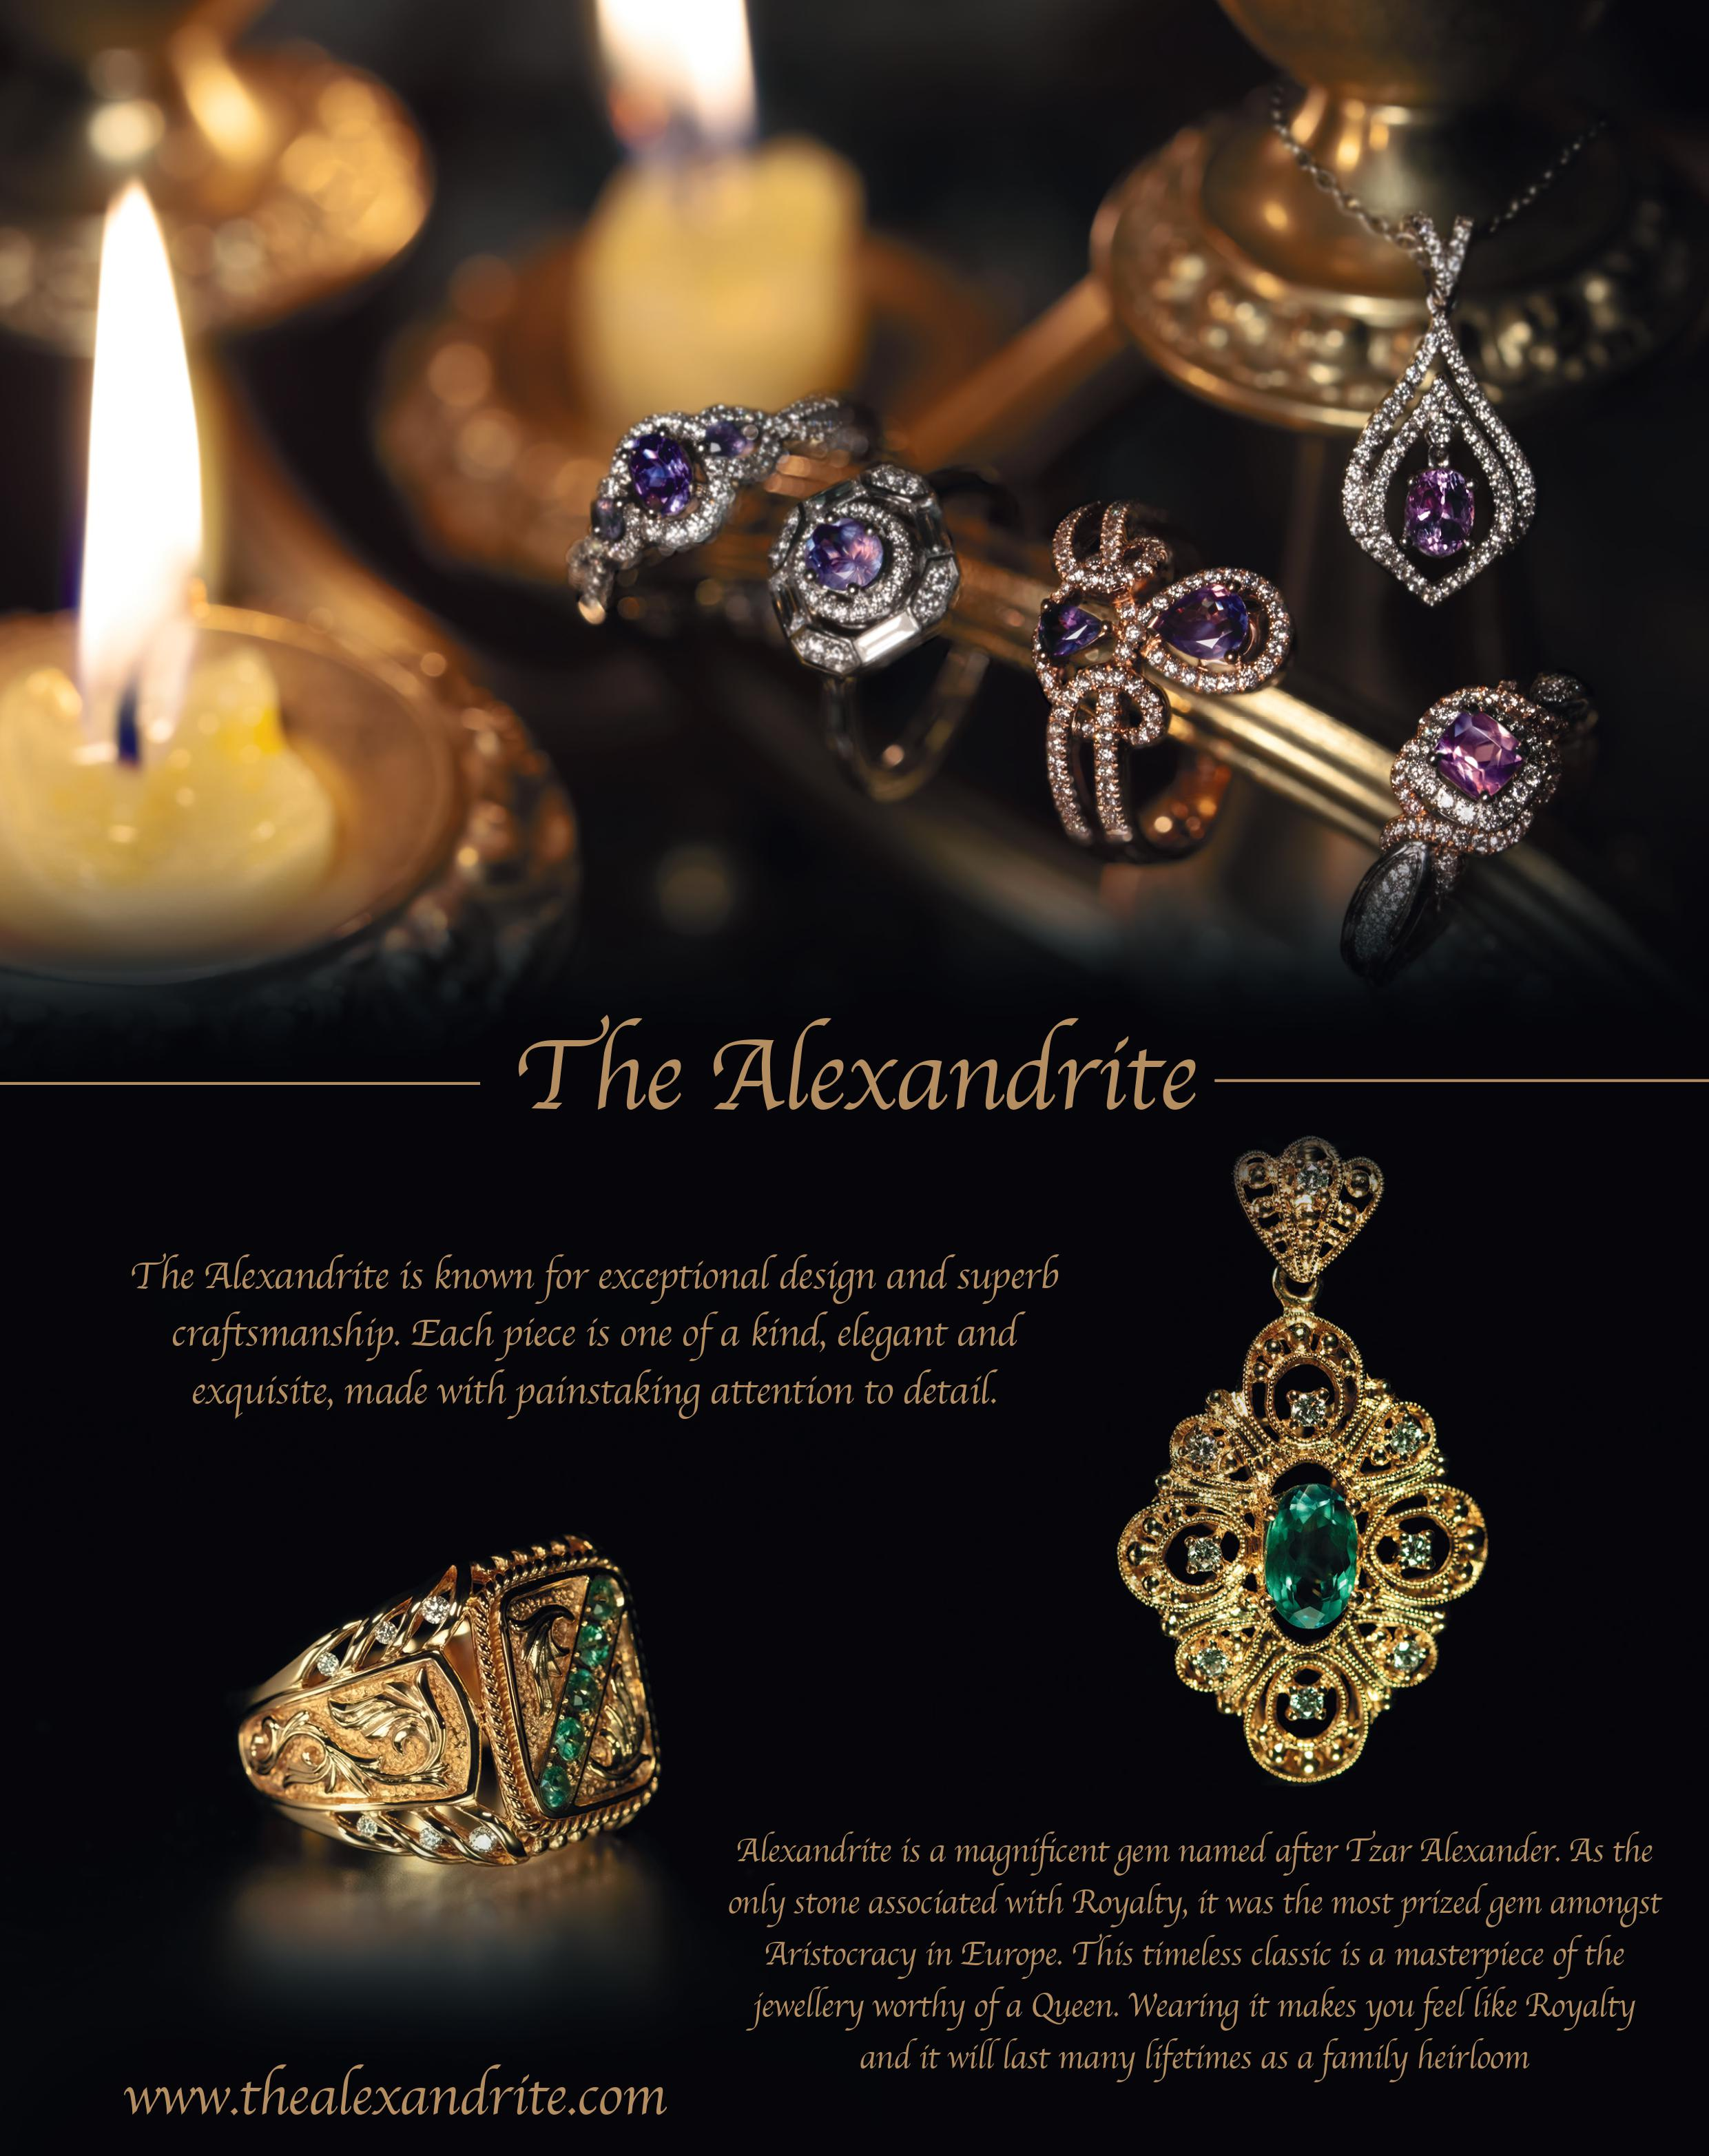 The Alexandrite: The Only Precious Stone Associated with Royalty Prides itself for Providing GIA Certified Natural Alexandrite since 2006